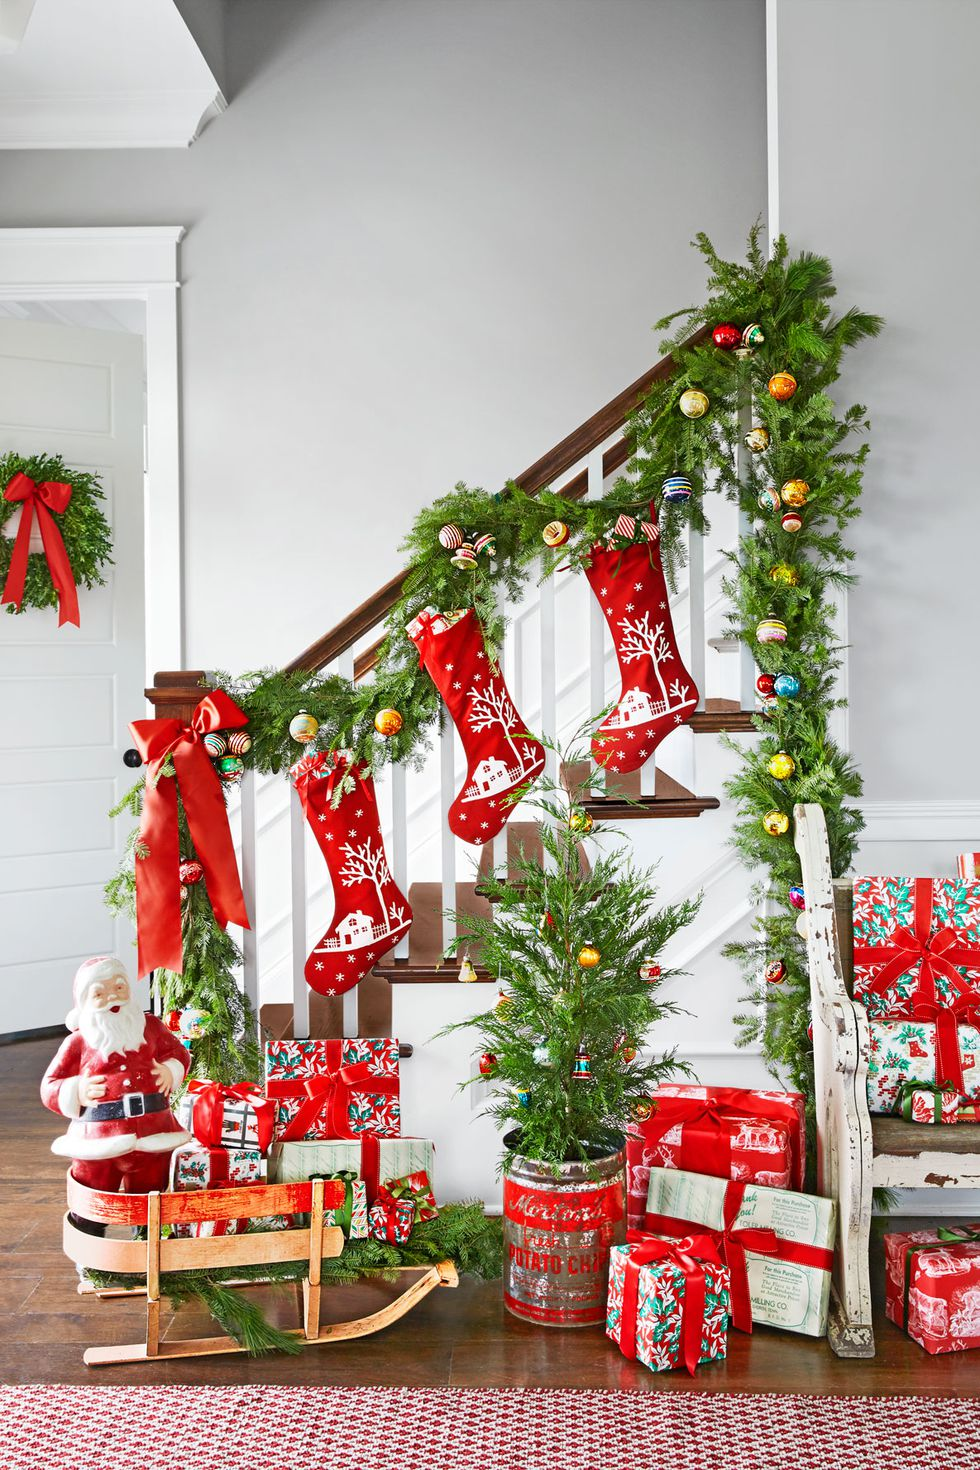 1478275490-spirit-christmas-past-stairway-1216.jpg